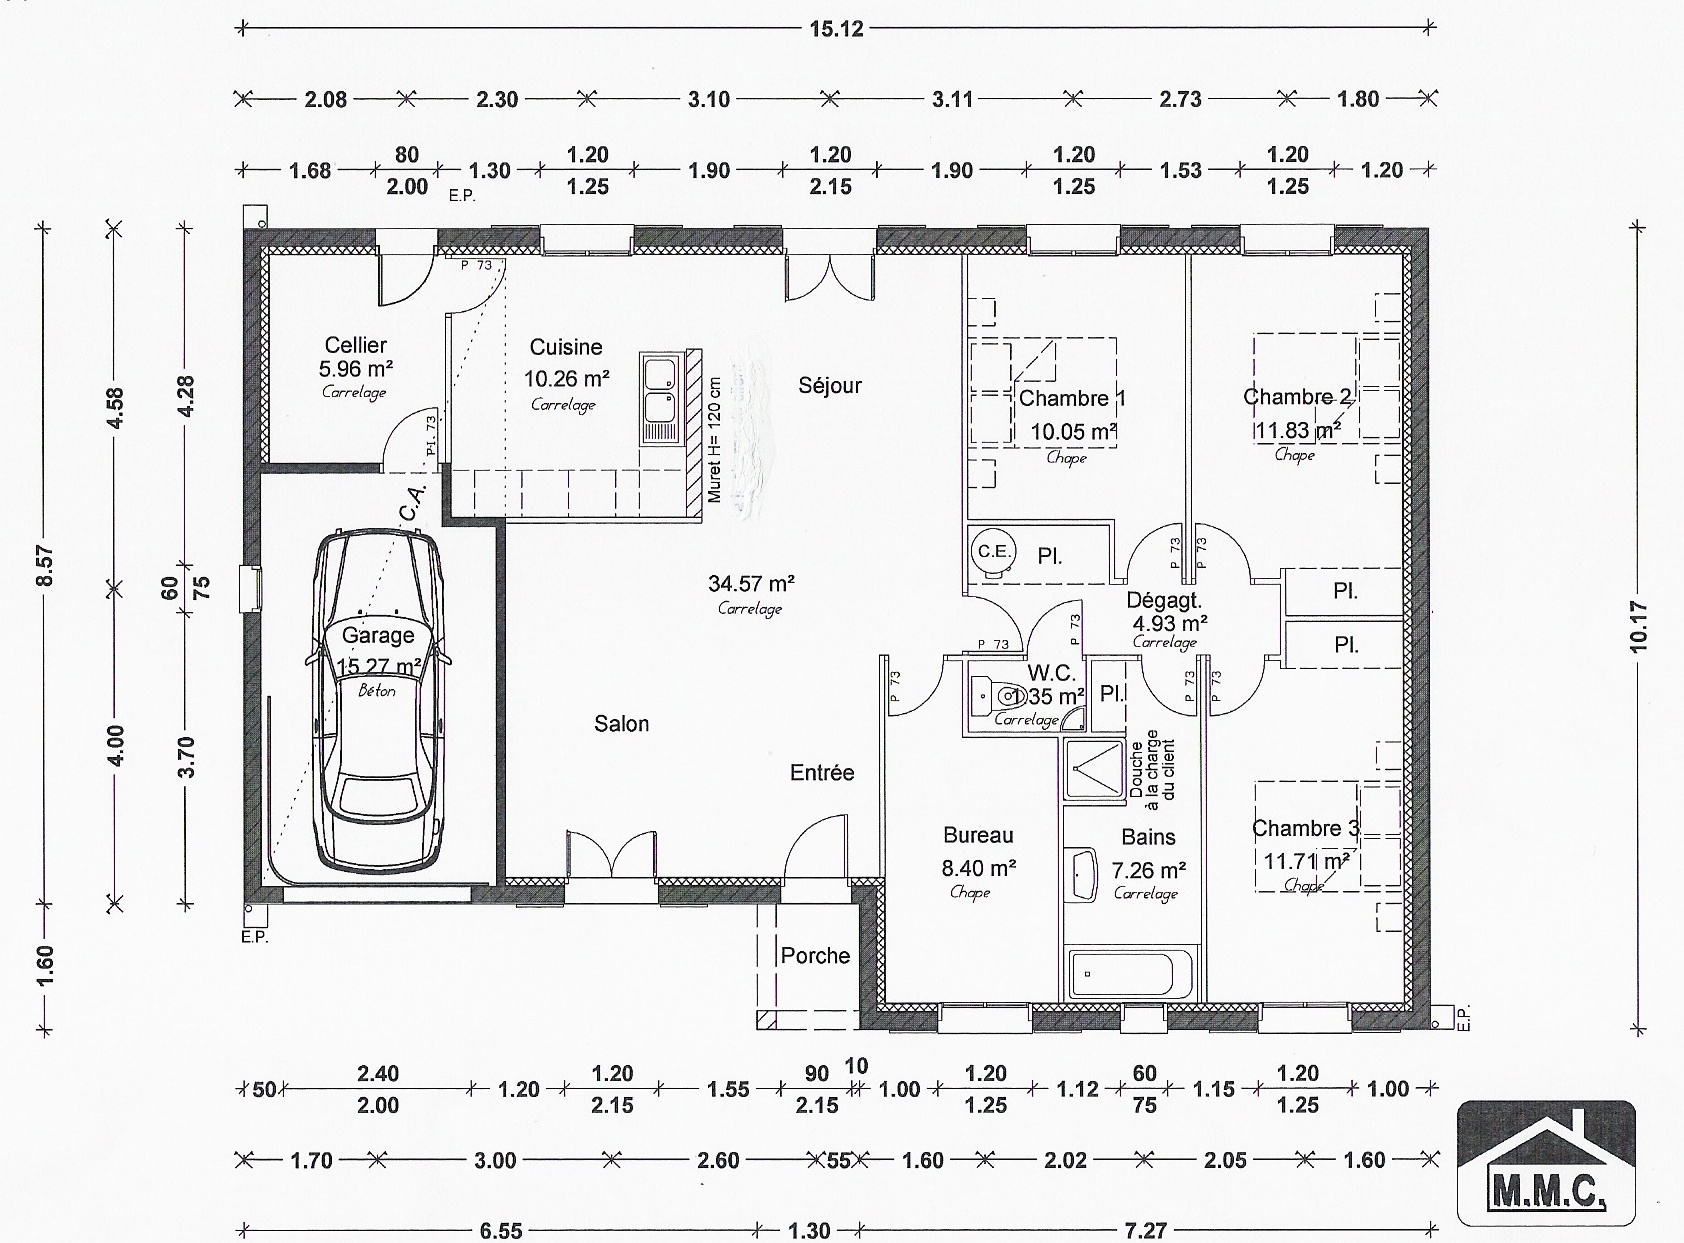 Plan de maison simple l 39 impression 3d for Plan maison 80m2 3 chambres